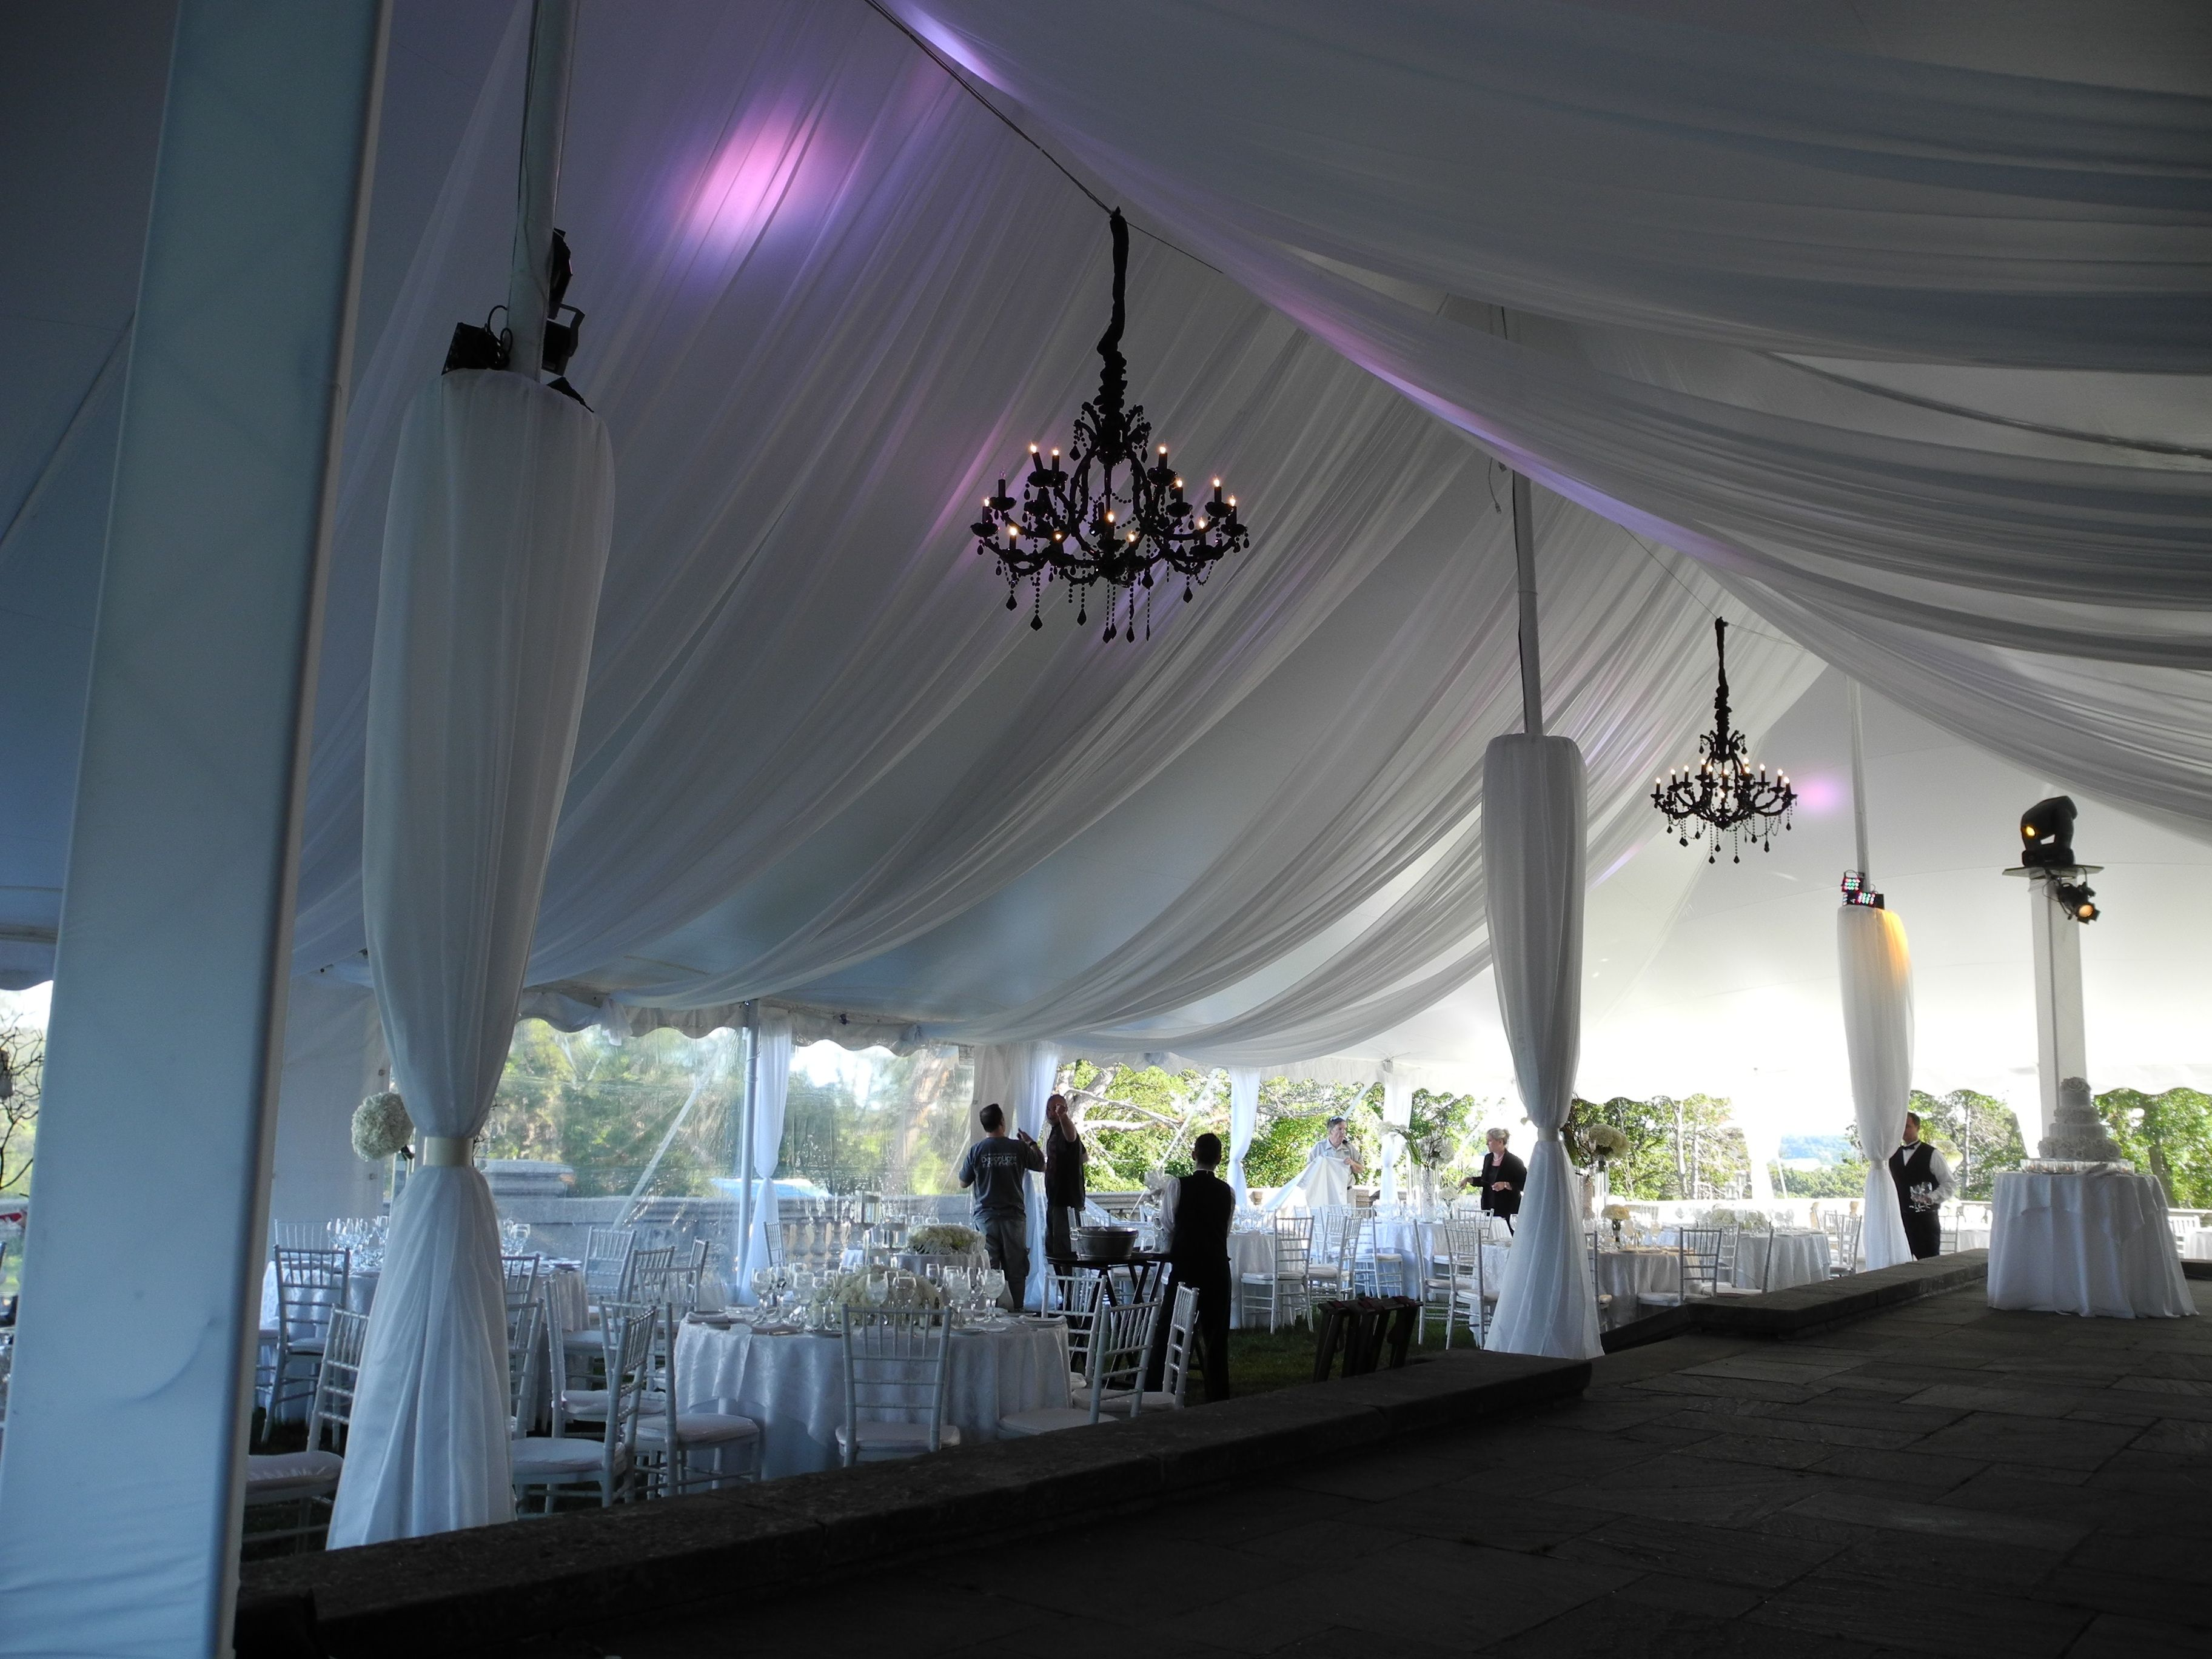 hang draped tulum blue pink drapes how events co for ceiling and drape smsender to